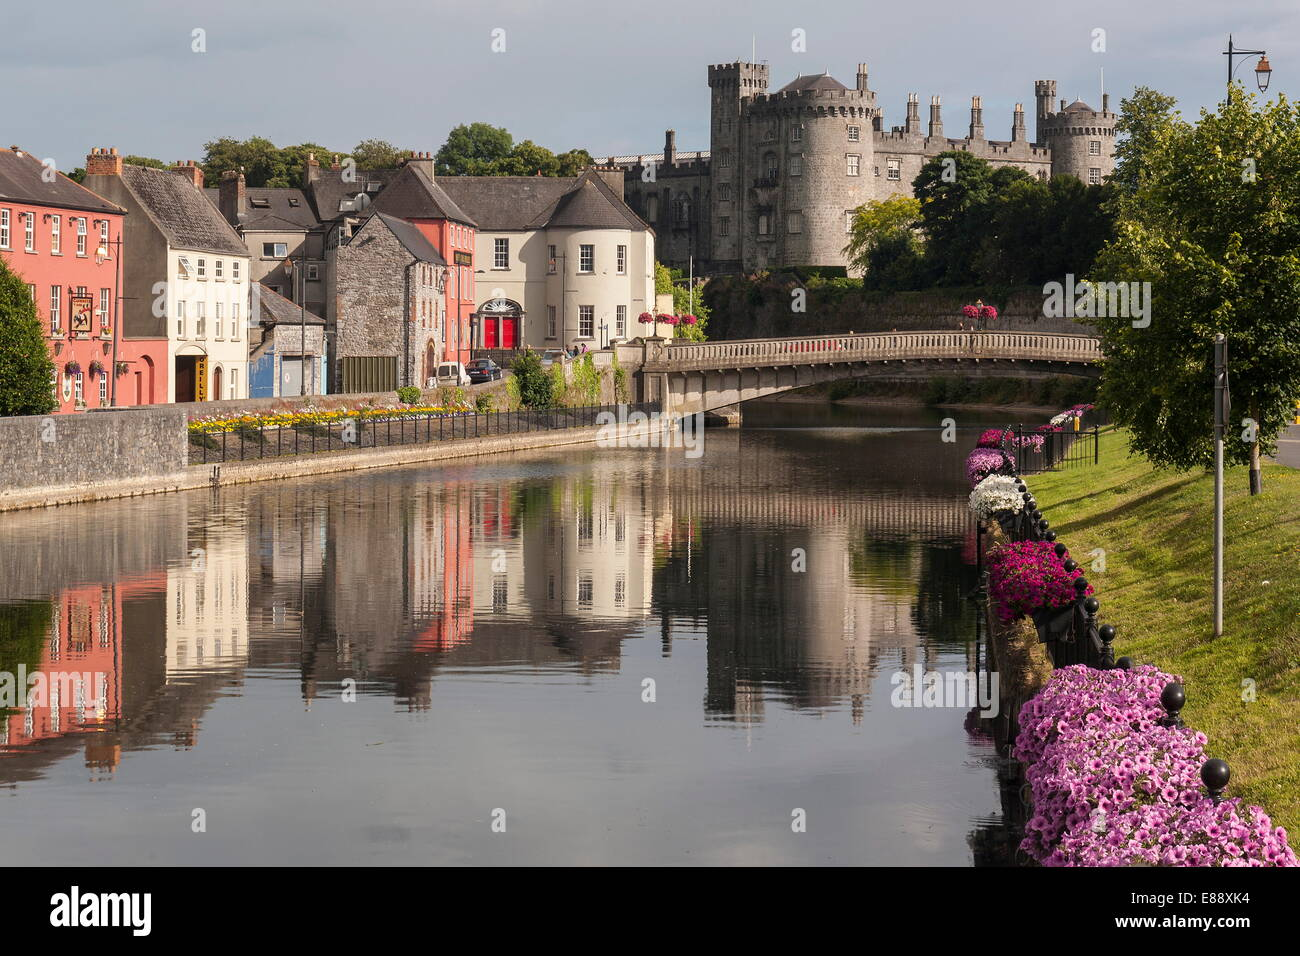 Castle and River Nore, Kilkenny, County Kilkenny, Leinster, Republic of Ireland, Europe - Stock Image